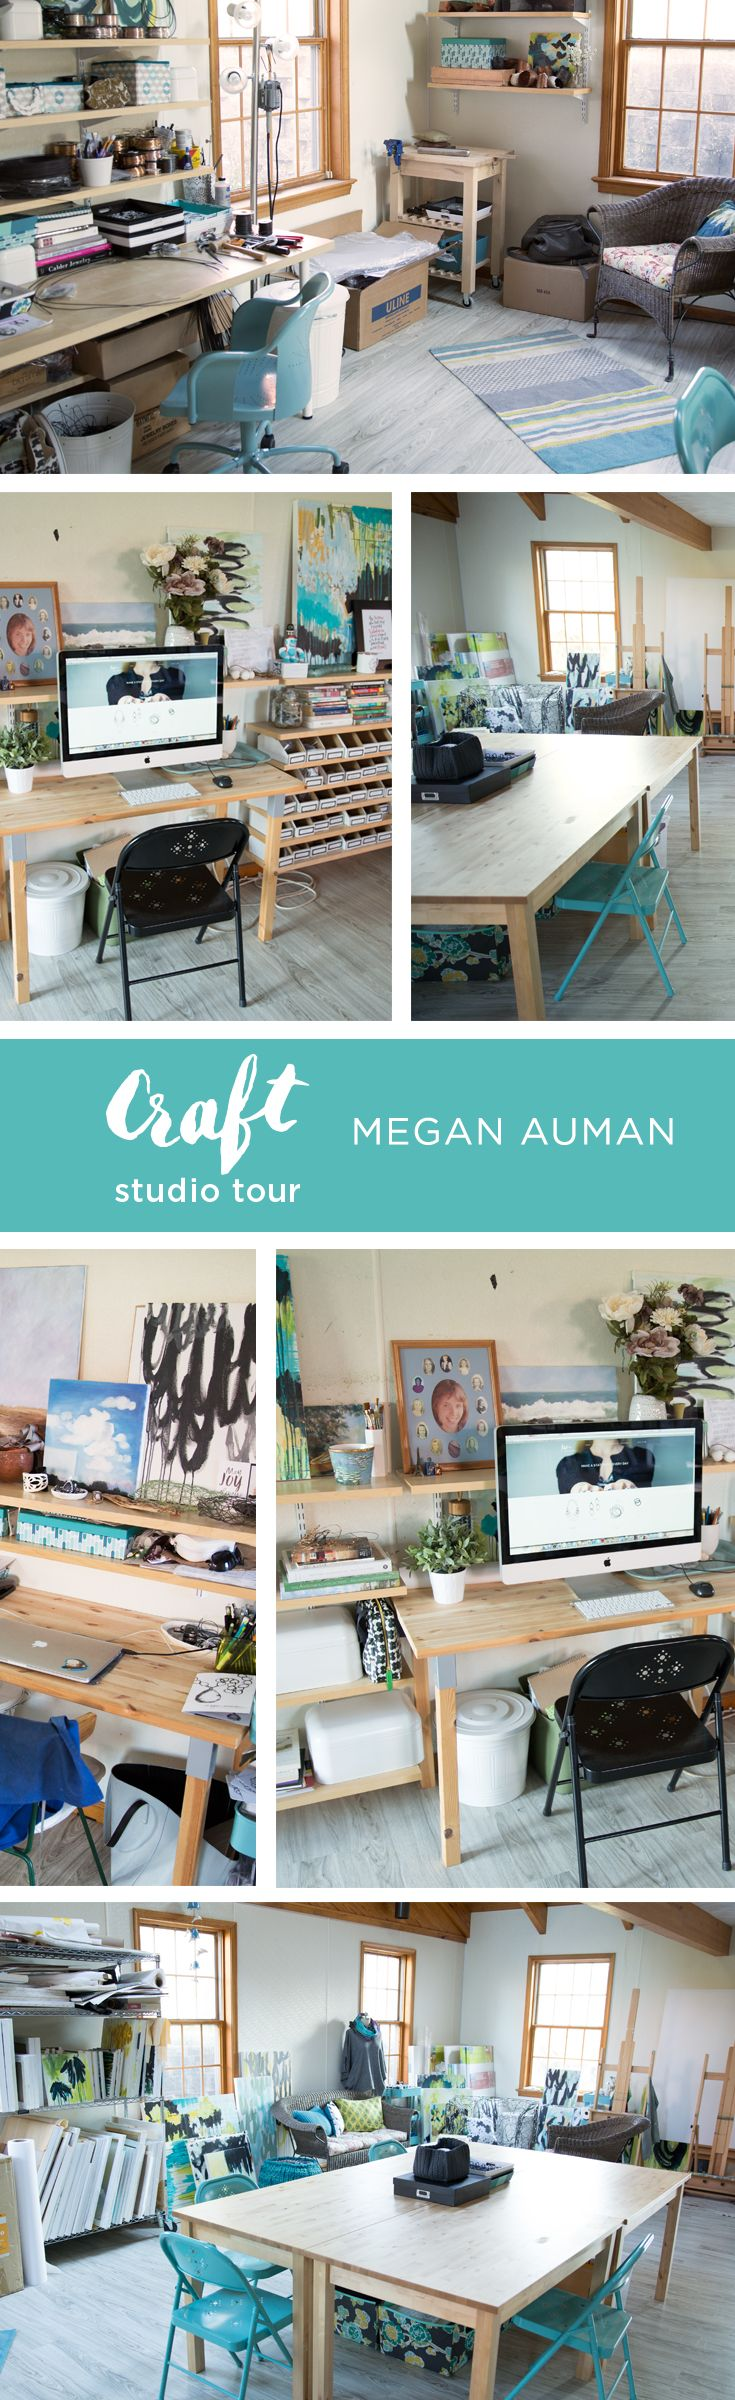 Megan Auman is a wildly successful jewelry-maker and business coach. Get a tour of her studio space and find out how she stays inspired on the CreativeLive blog.